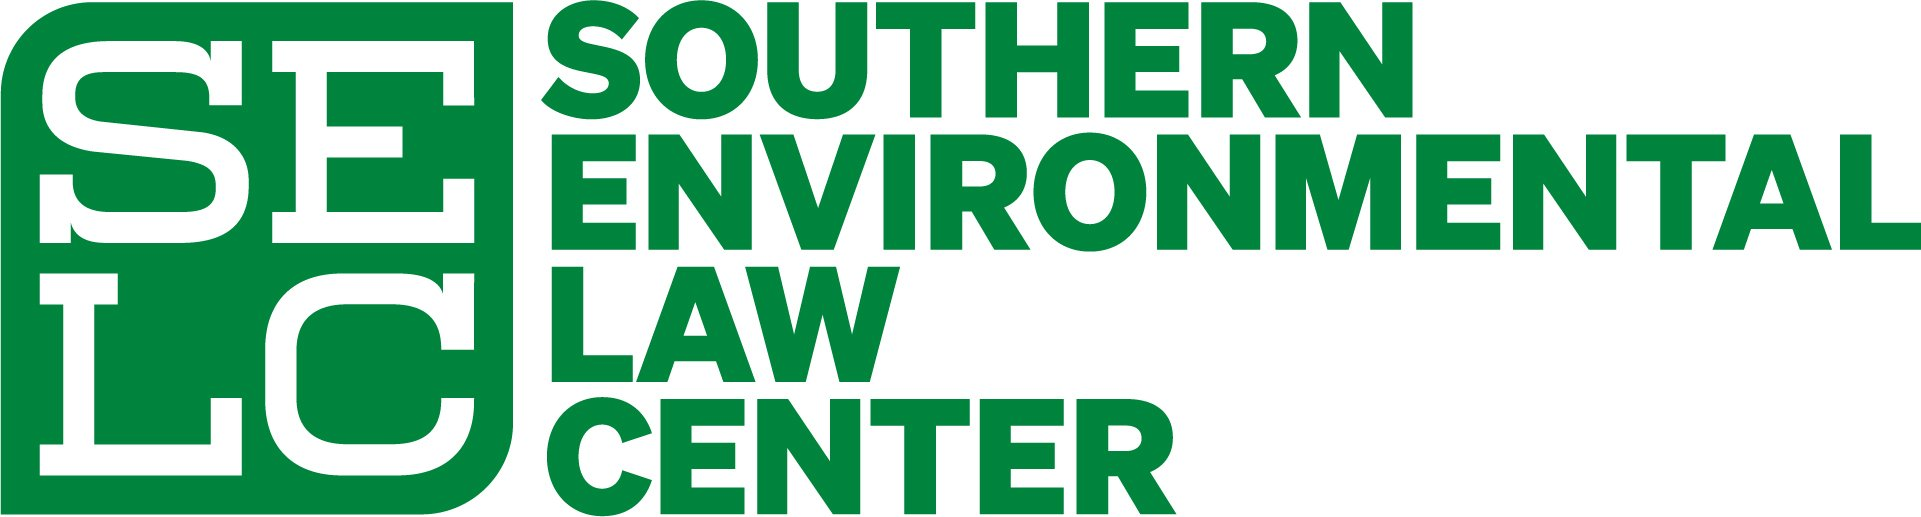 The Southern Environmental Law Center